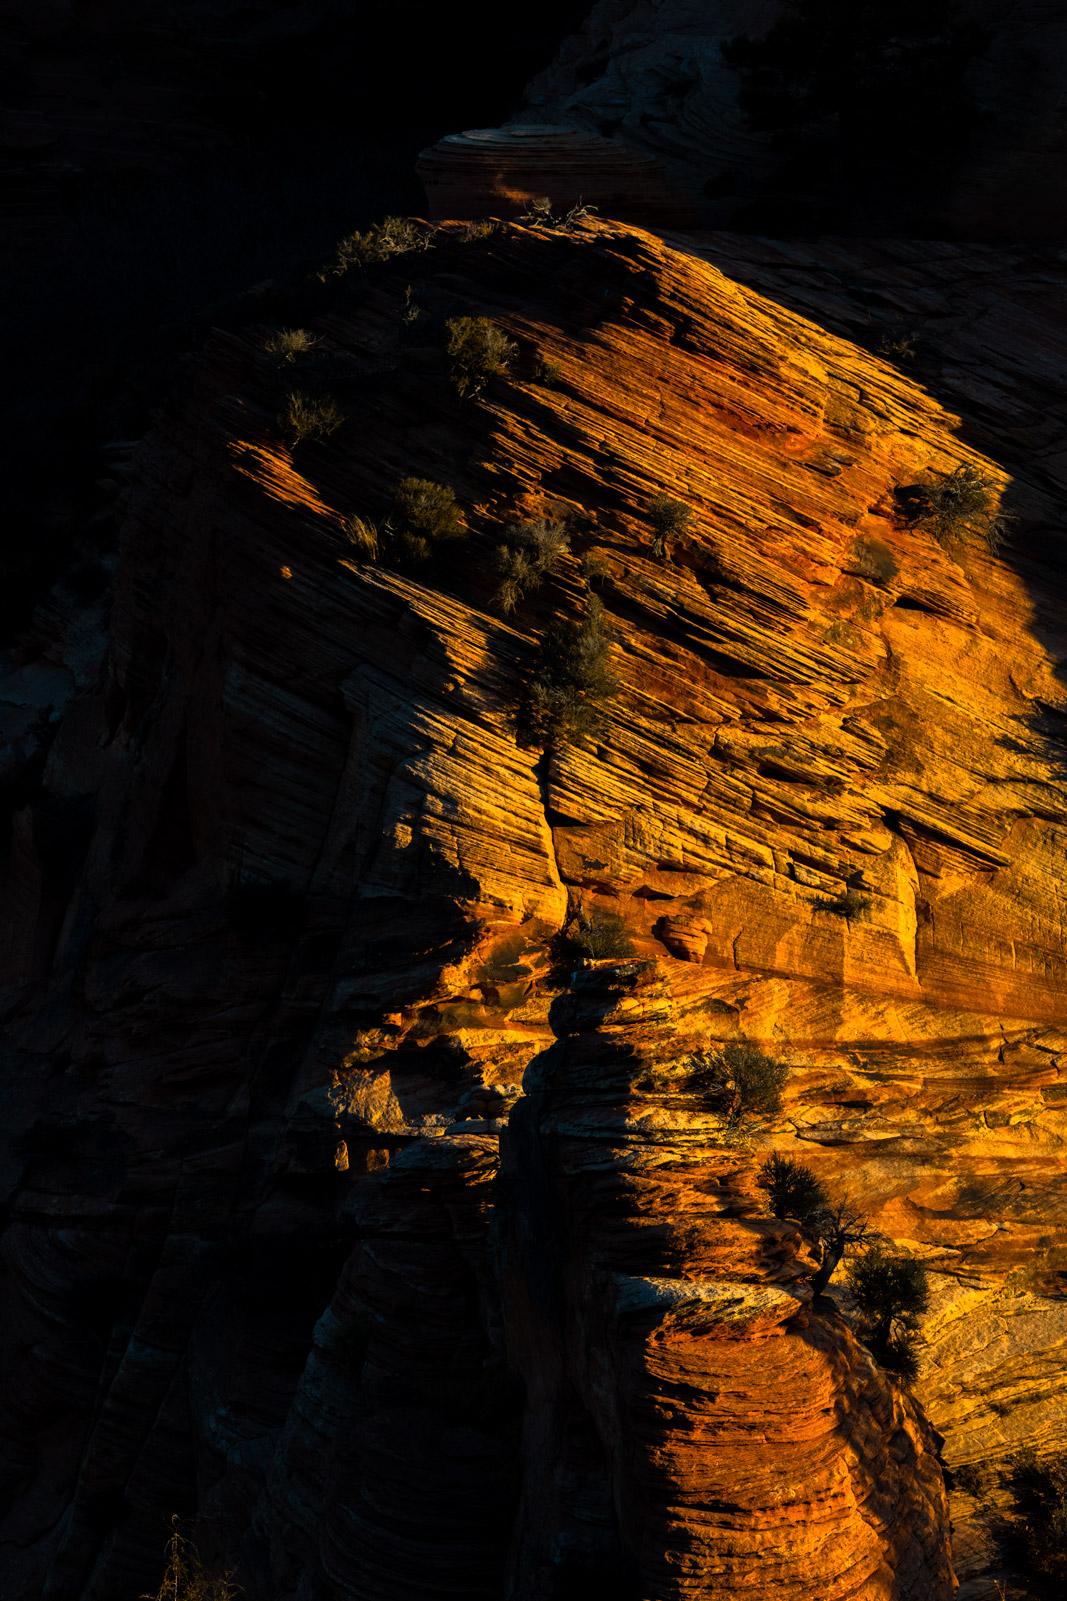 Utah, Zion, National Park, Kolob, Canyon, Fall, Shadows